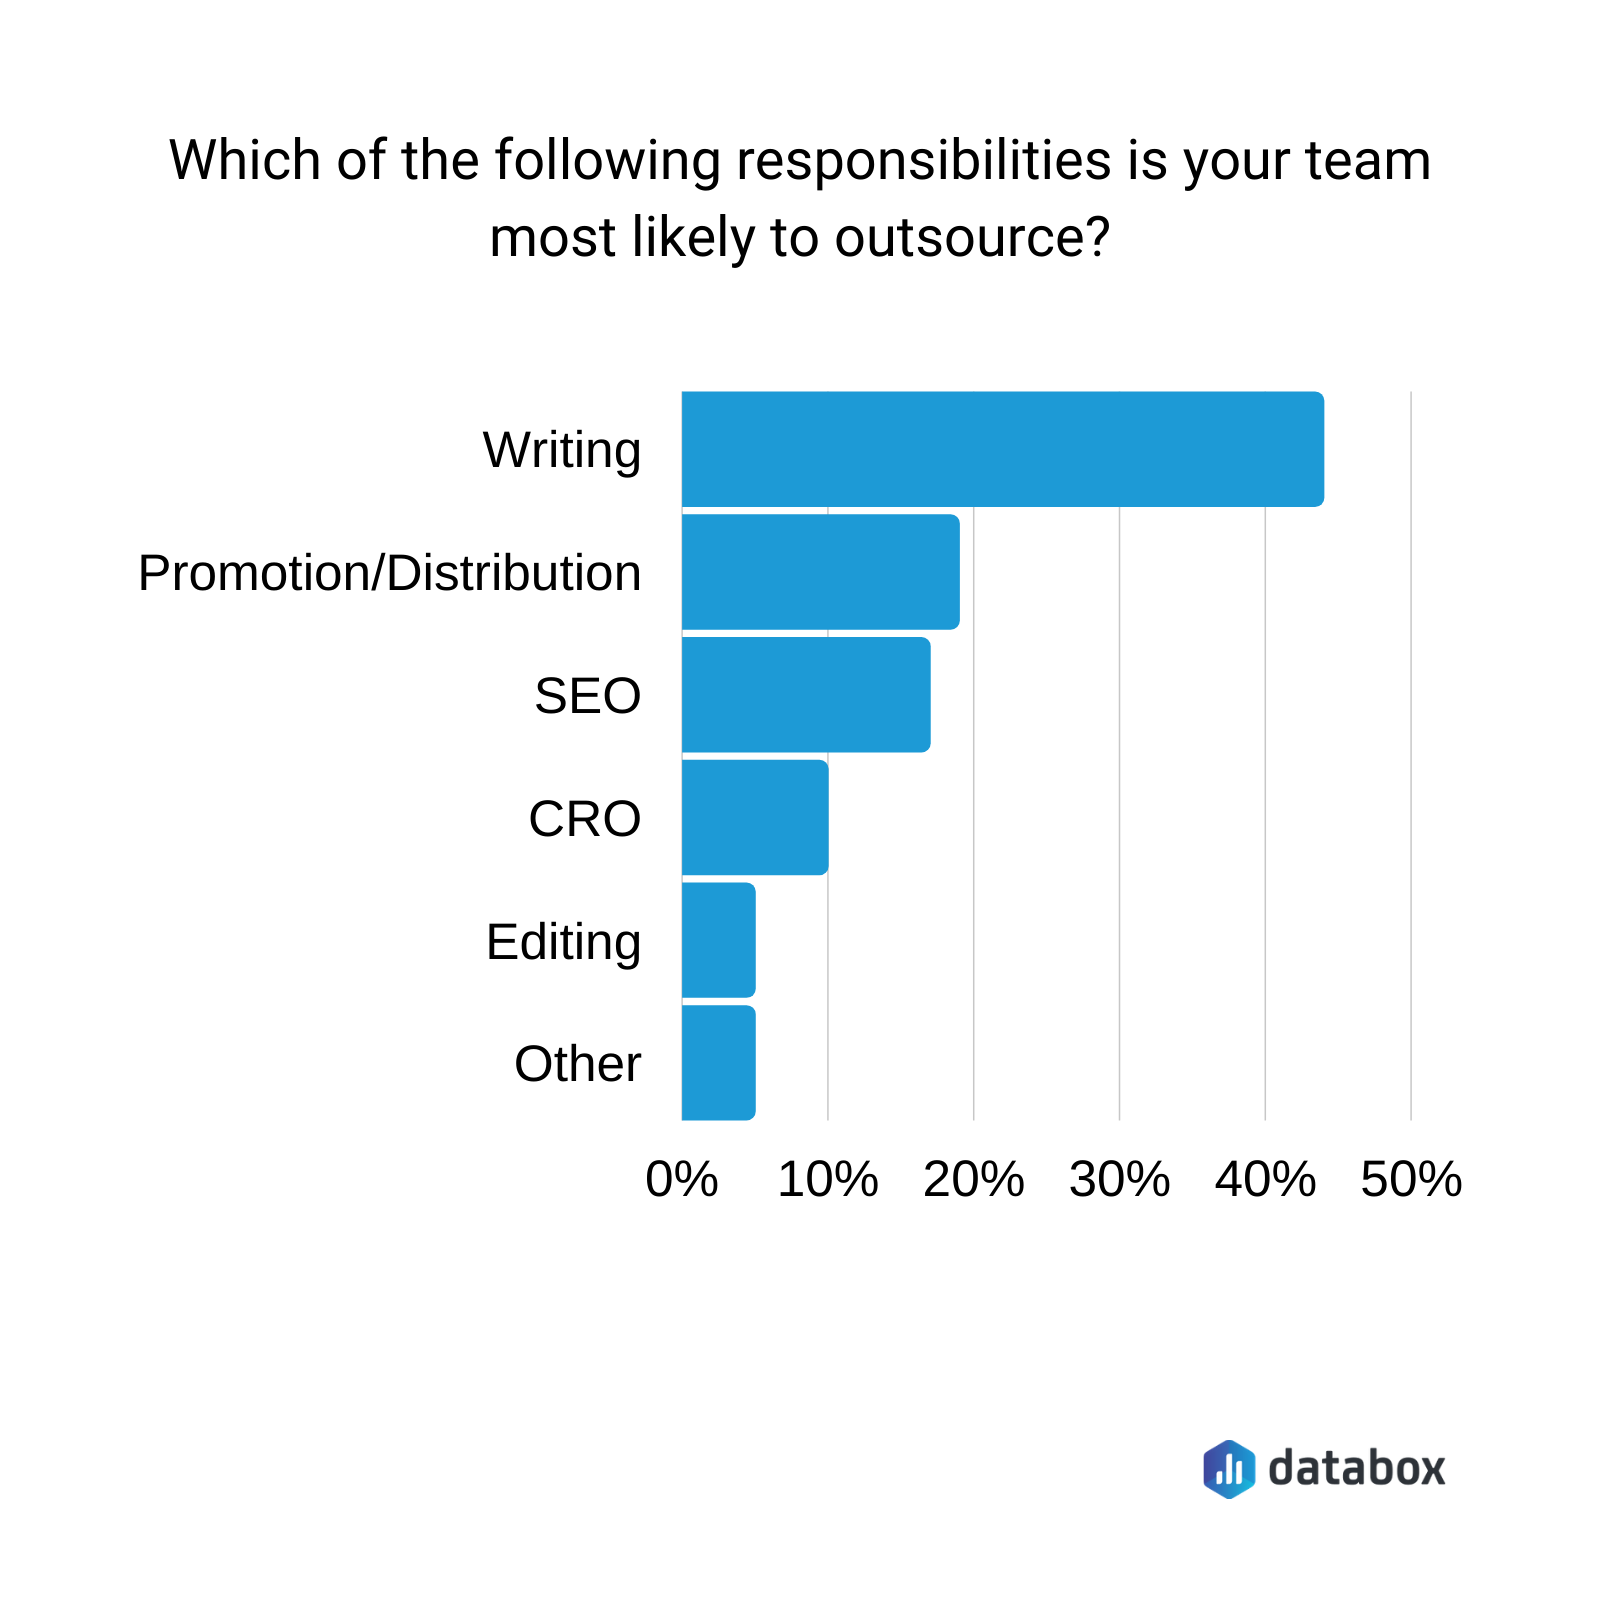 Which of the following responsibilities is your team most likely to outsource?